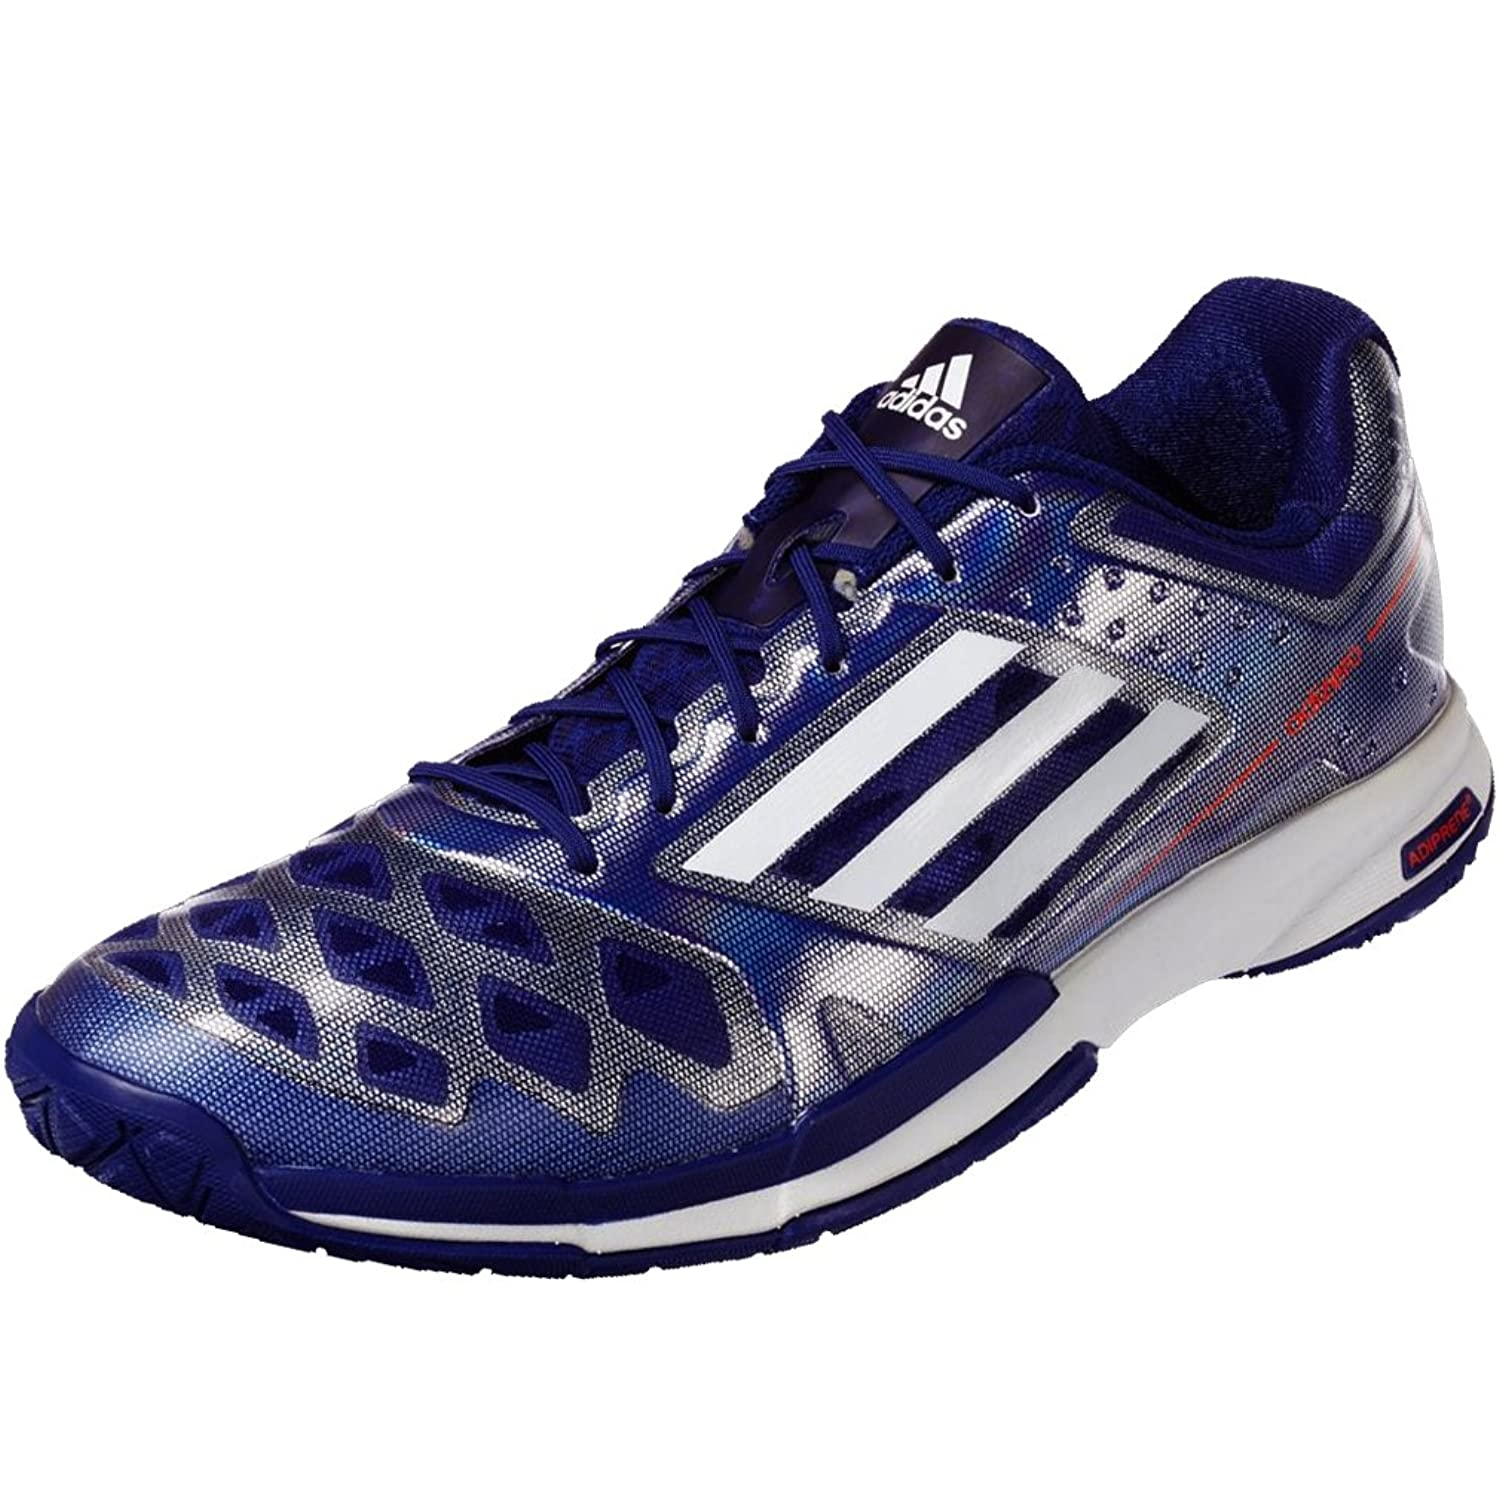 Adidas Chaussure Indoor Quickforce 7 W - Size Chaussures Universelle Fr - 40 2/3- Indoor AepQY9